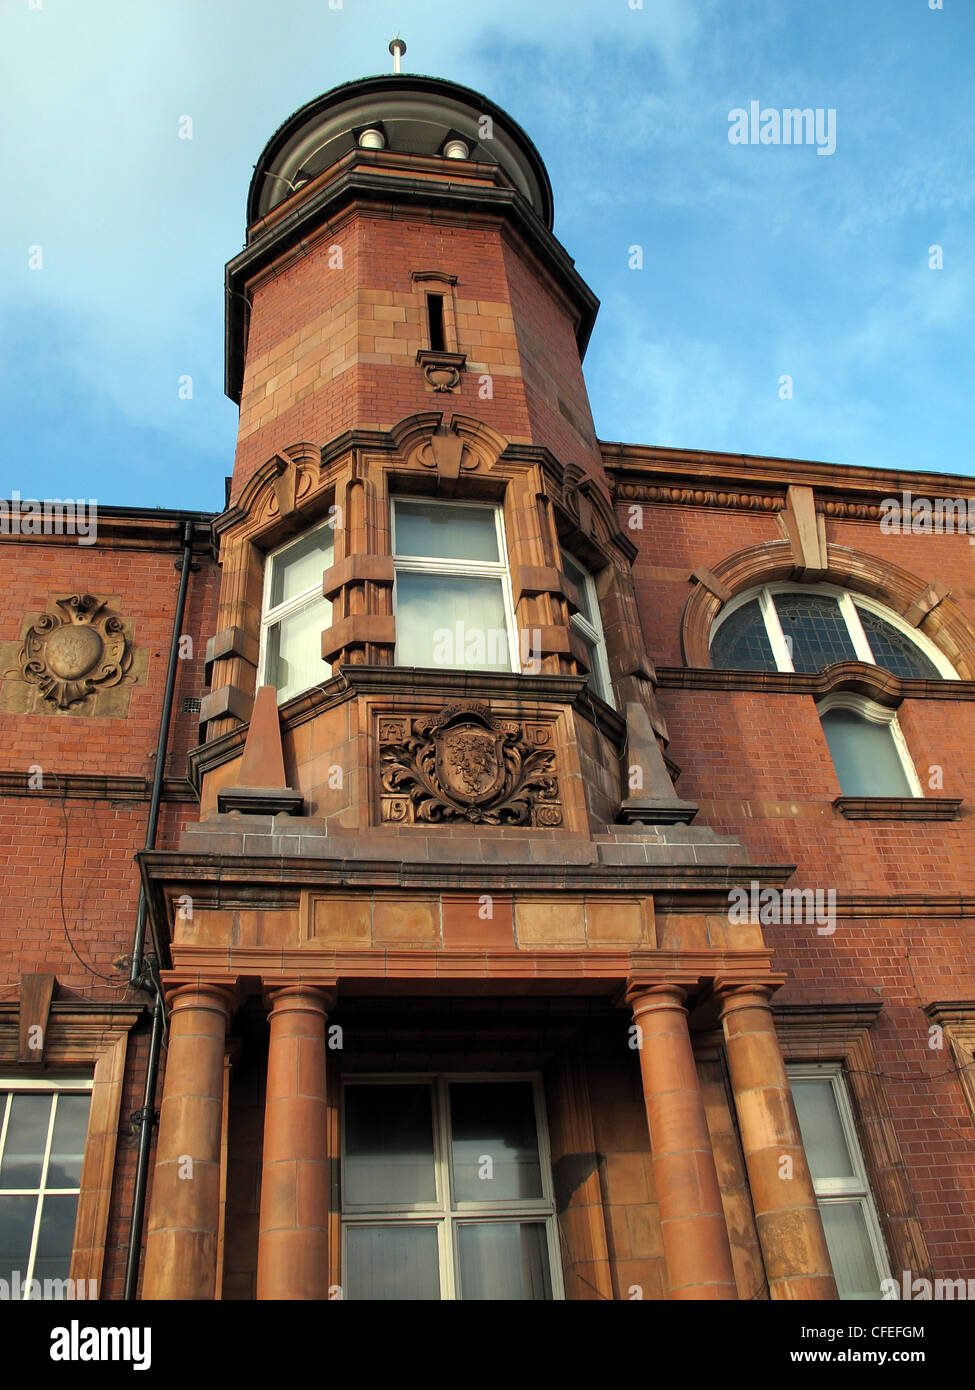 Warrington Police Headquarters Building stonework,Cheshire,Constabulary,Force,gotonysmith,Parker,Street,historic,history,office,offices,Chester,PC,PCs,CSO,CSOs,victorian,victorians,and,stone,sandstone,tower,lookout,gotonysmith,Warringtonians,Buy Pictures of,Buy Images Of